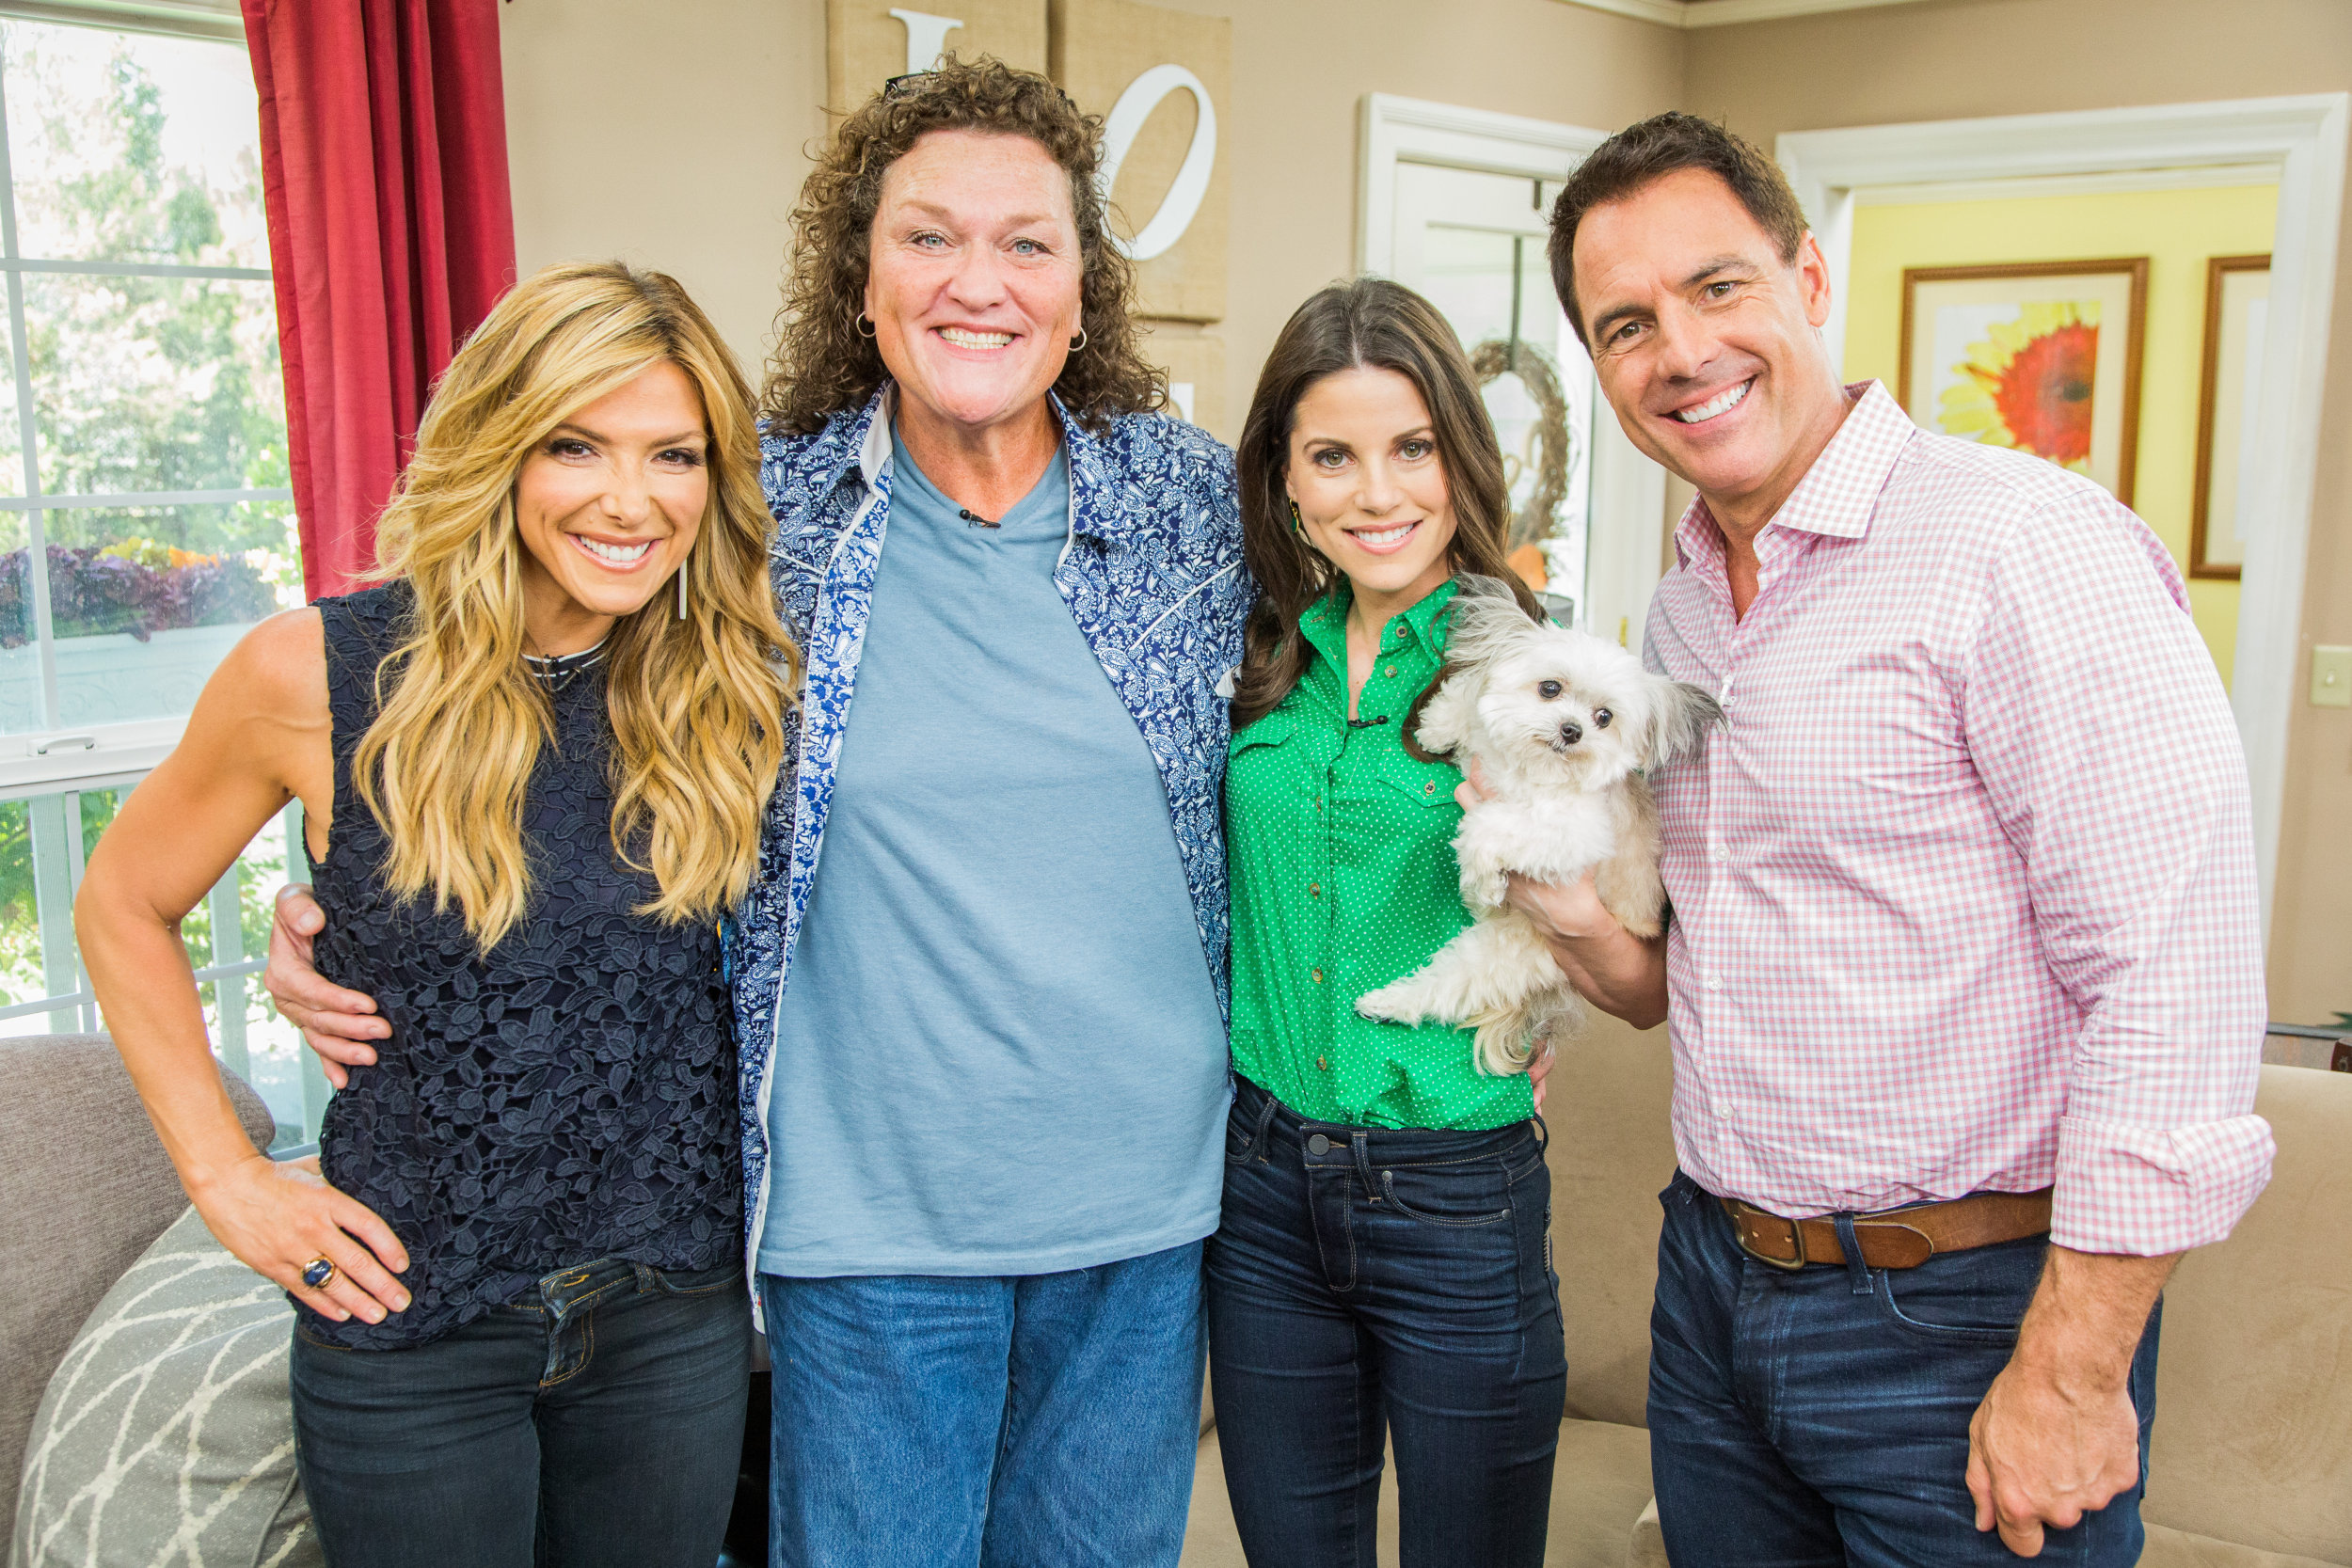 Hollywood steals home and family - Monday September 5th 2016